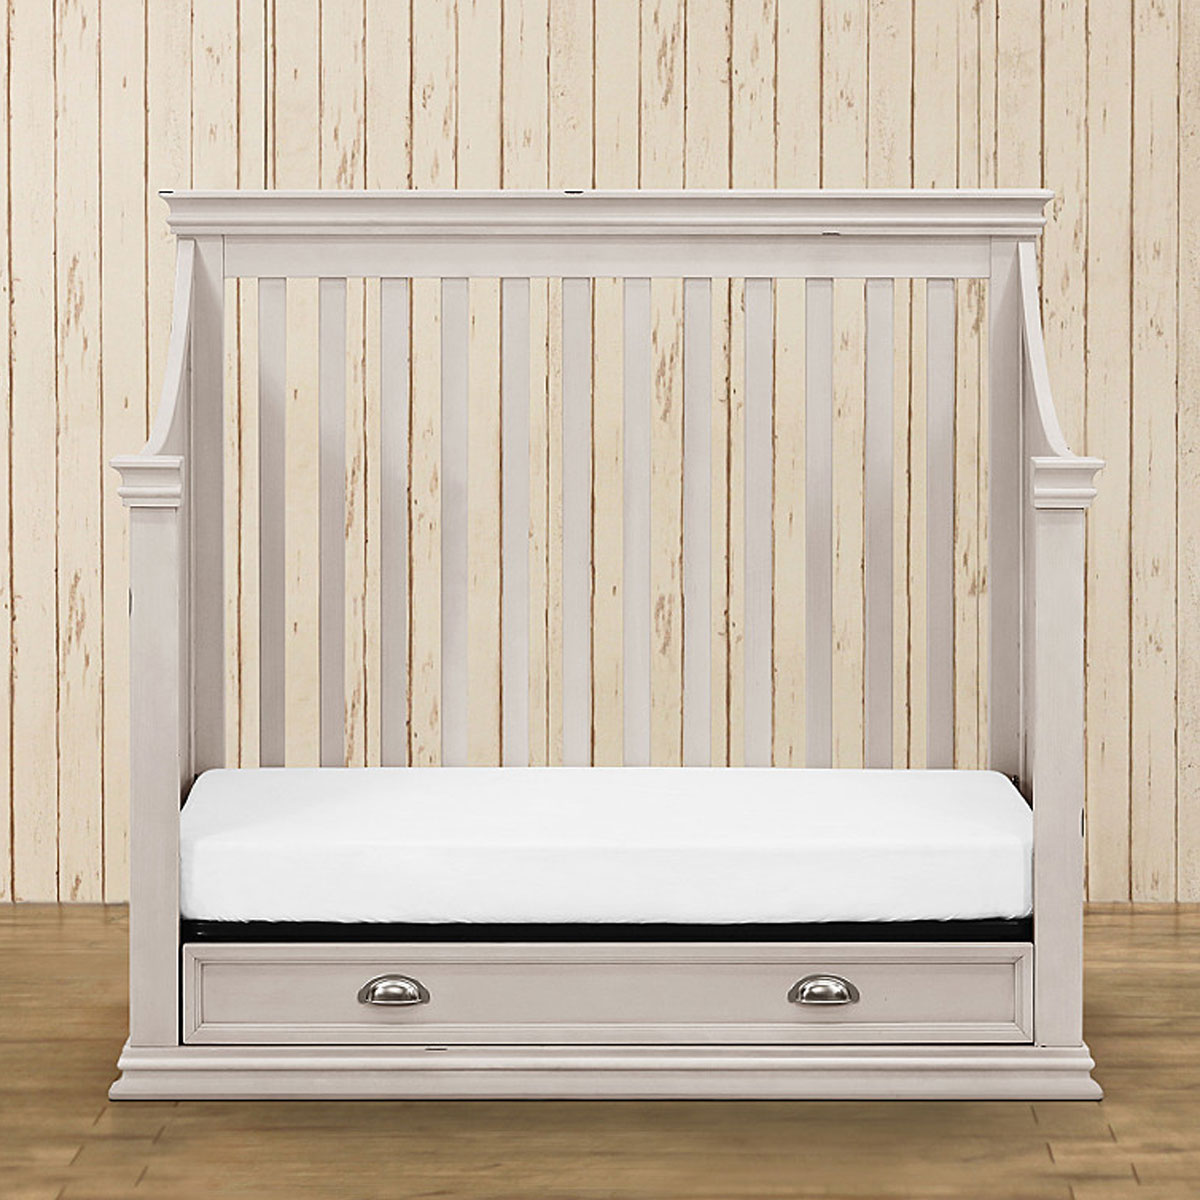 Franklin And Ben Mason 4 In 1 Convertible Crib With Toddler Bed Conversion  Kit In Distressed White FREE SHIPPING